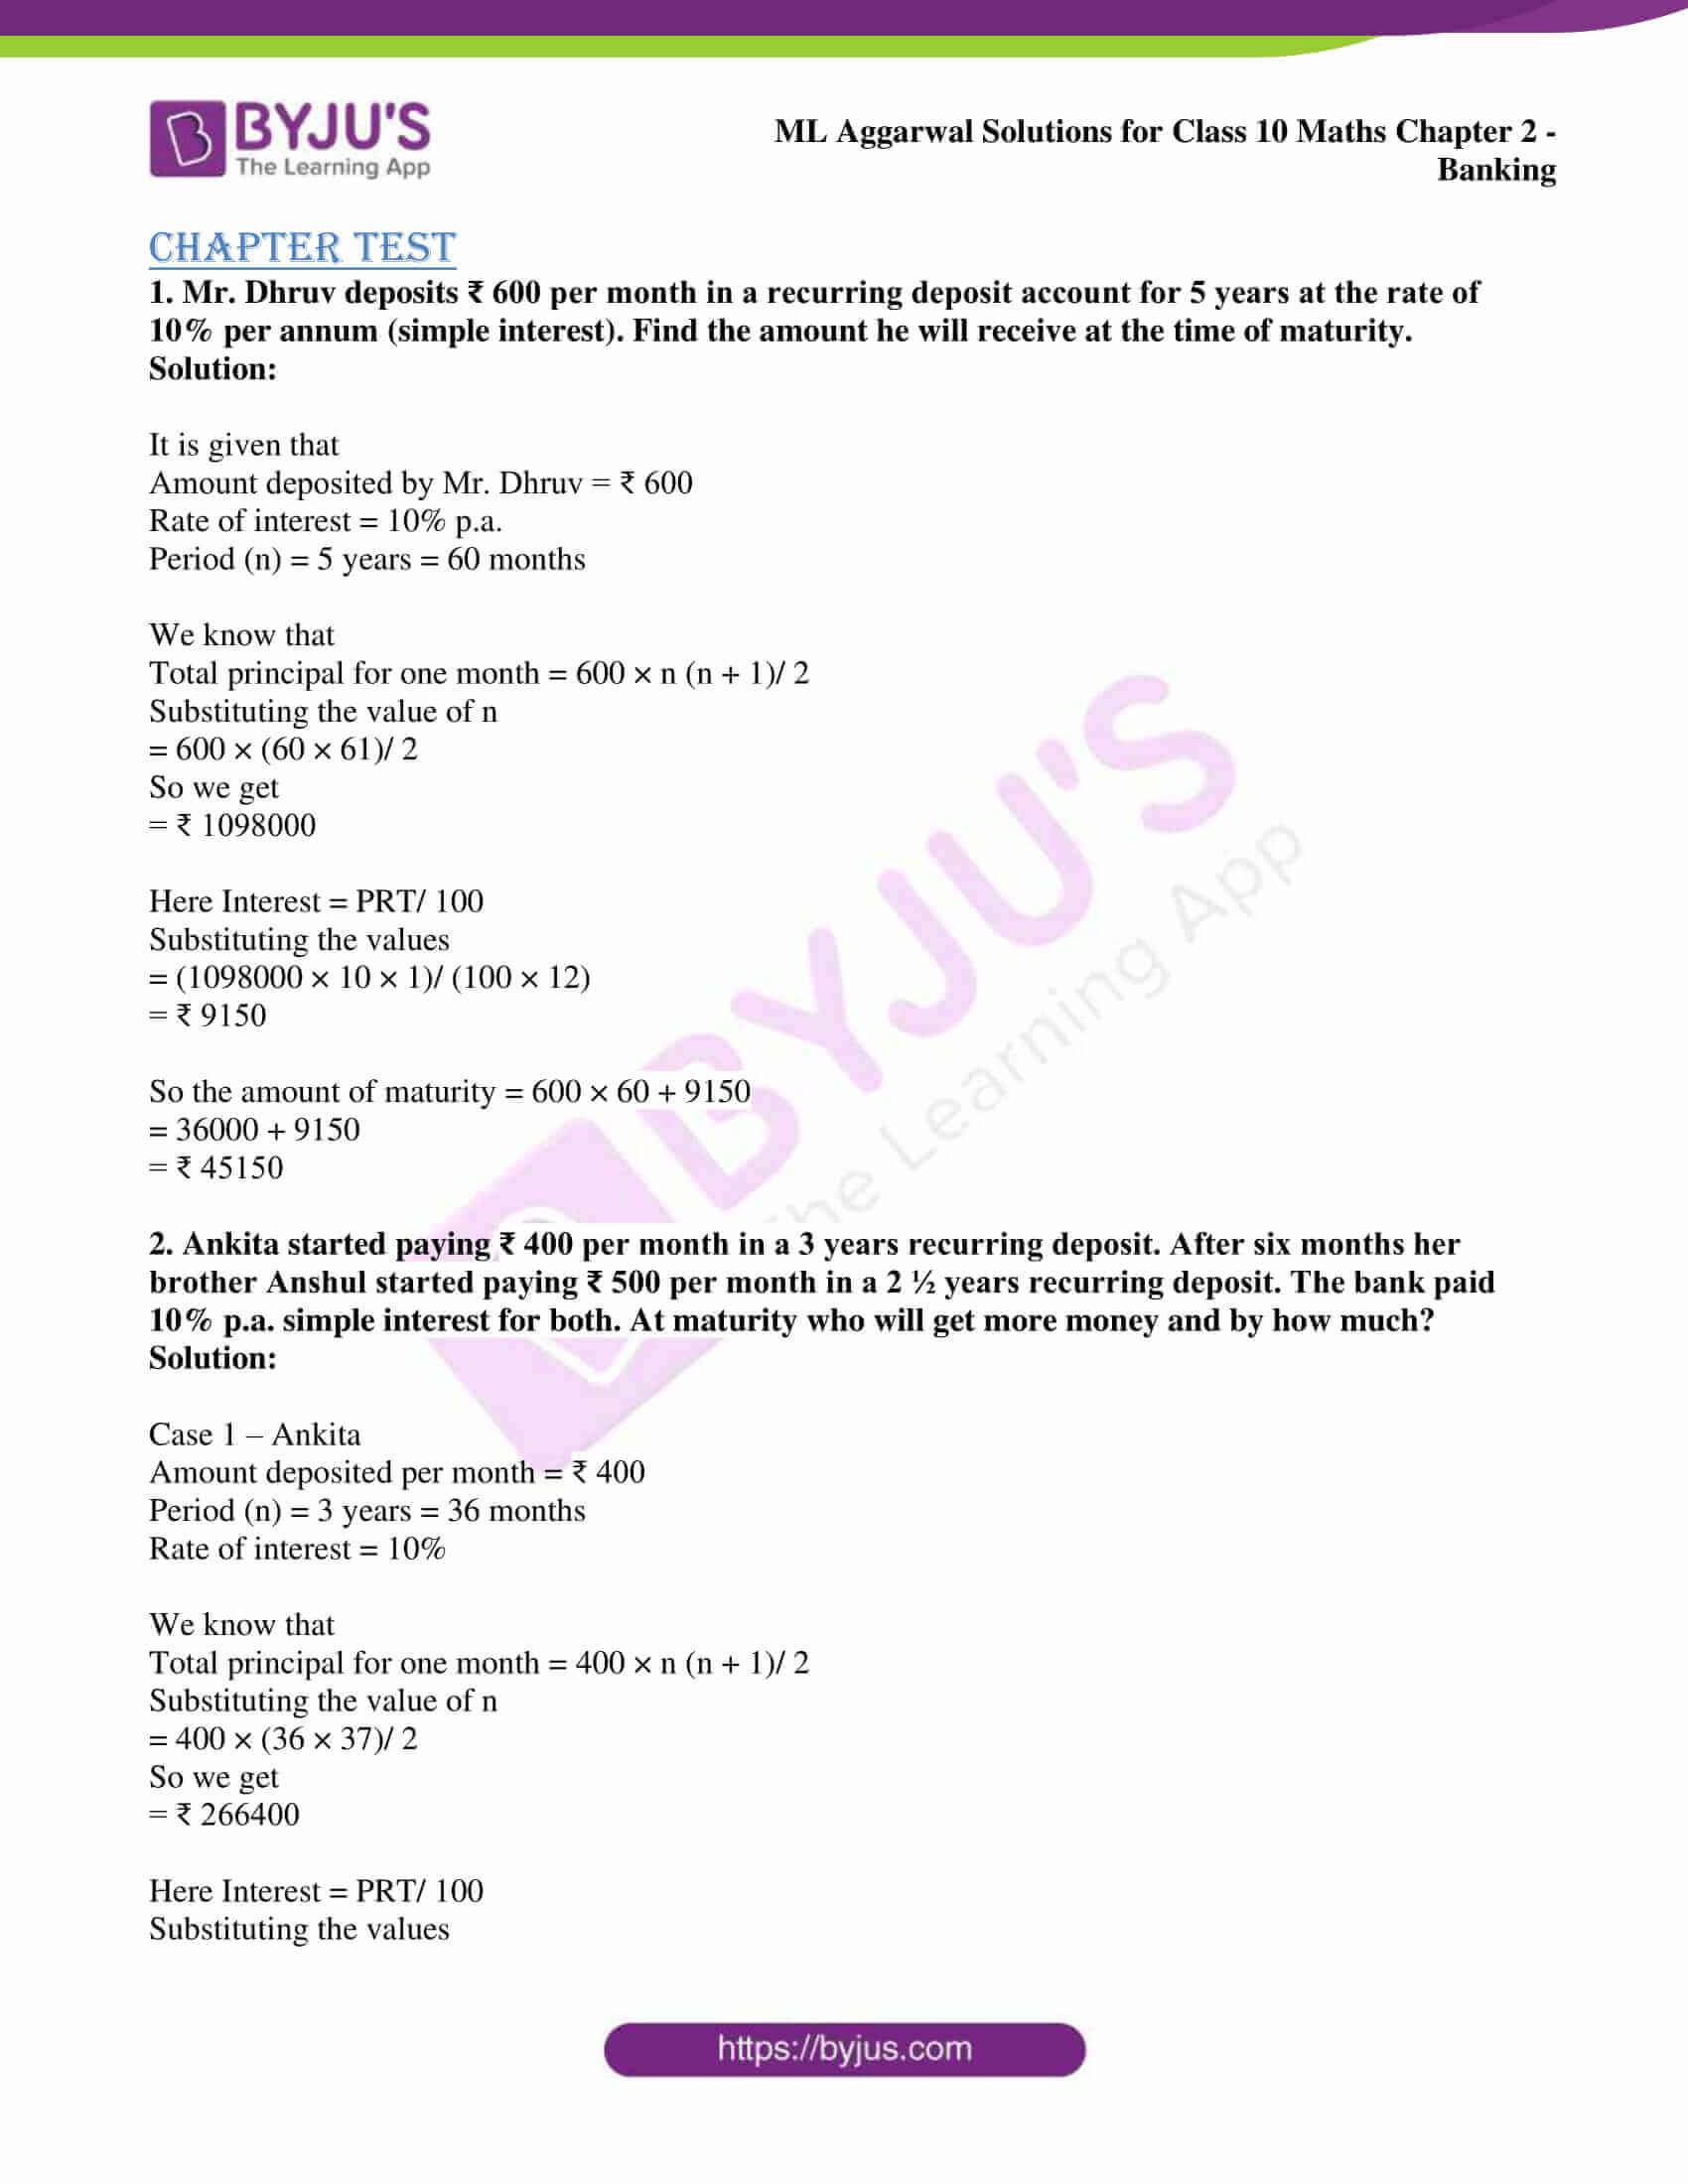 ml aggarwal solutions class 10 maths chapter 2 08